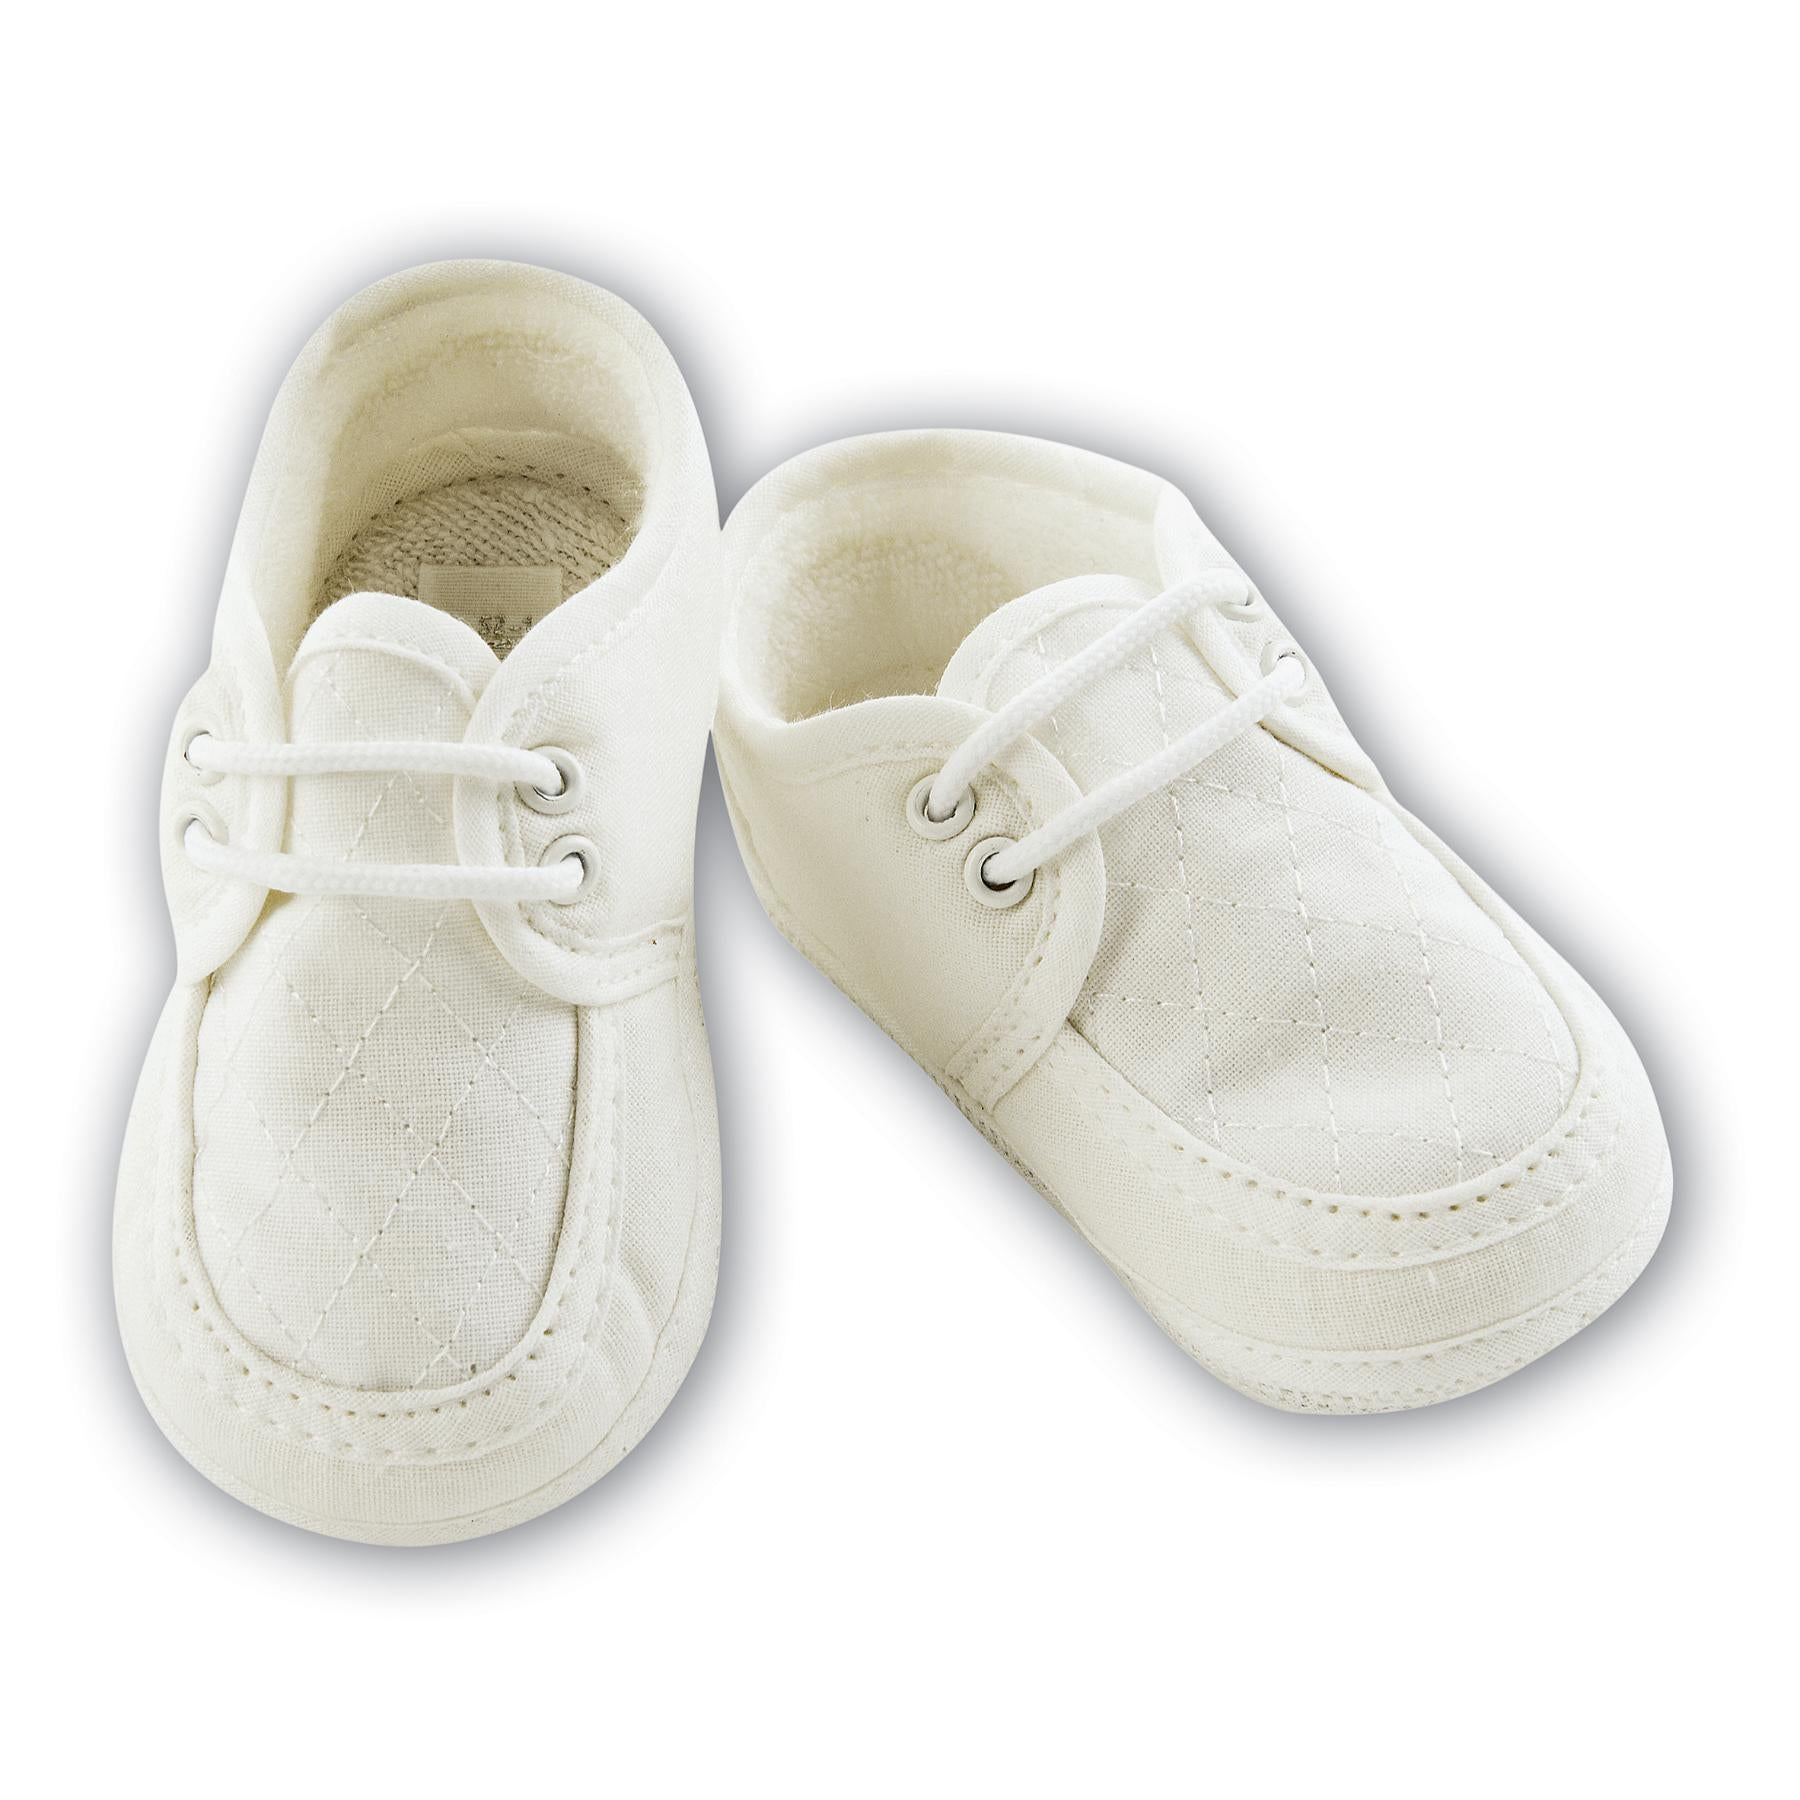 SARAH LOUISE CHRISTENING SHOES 4490 I